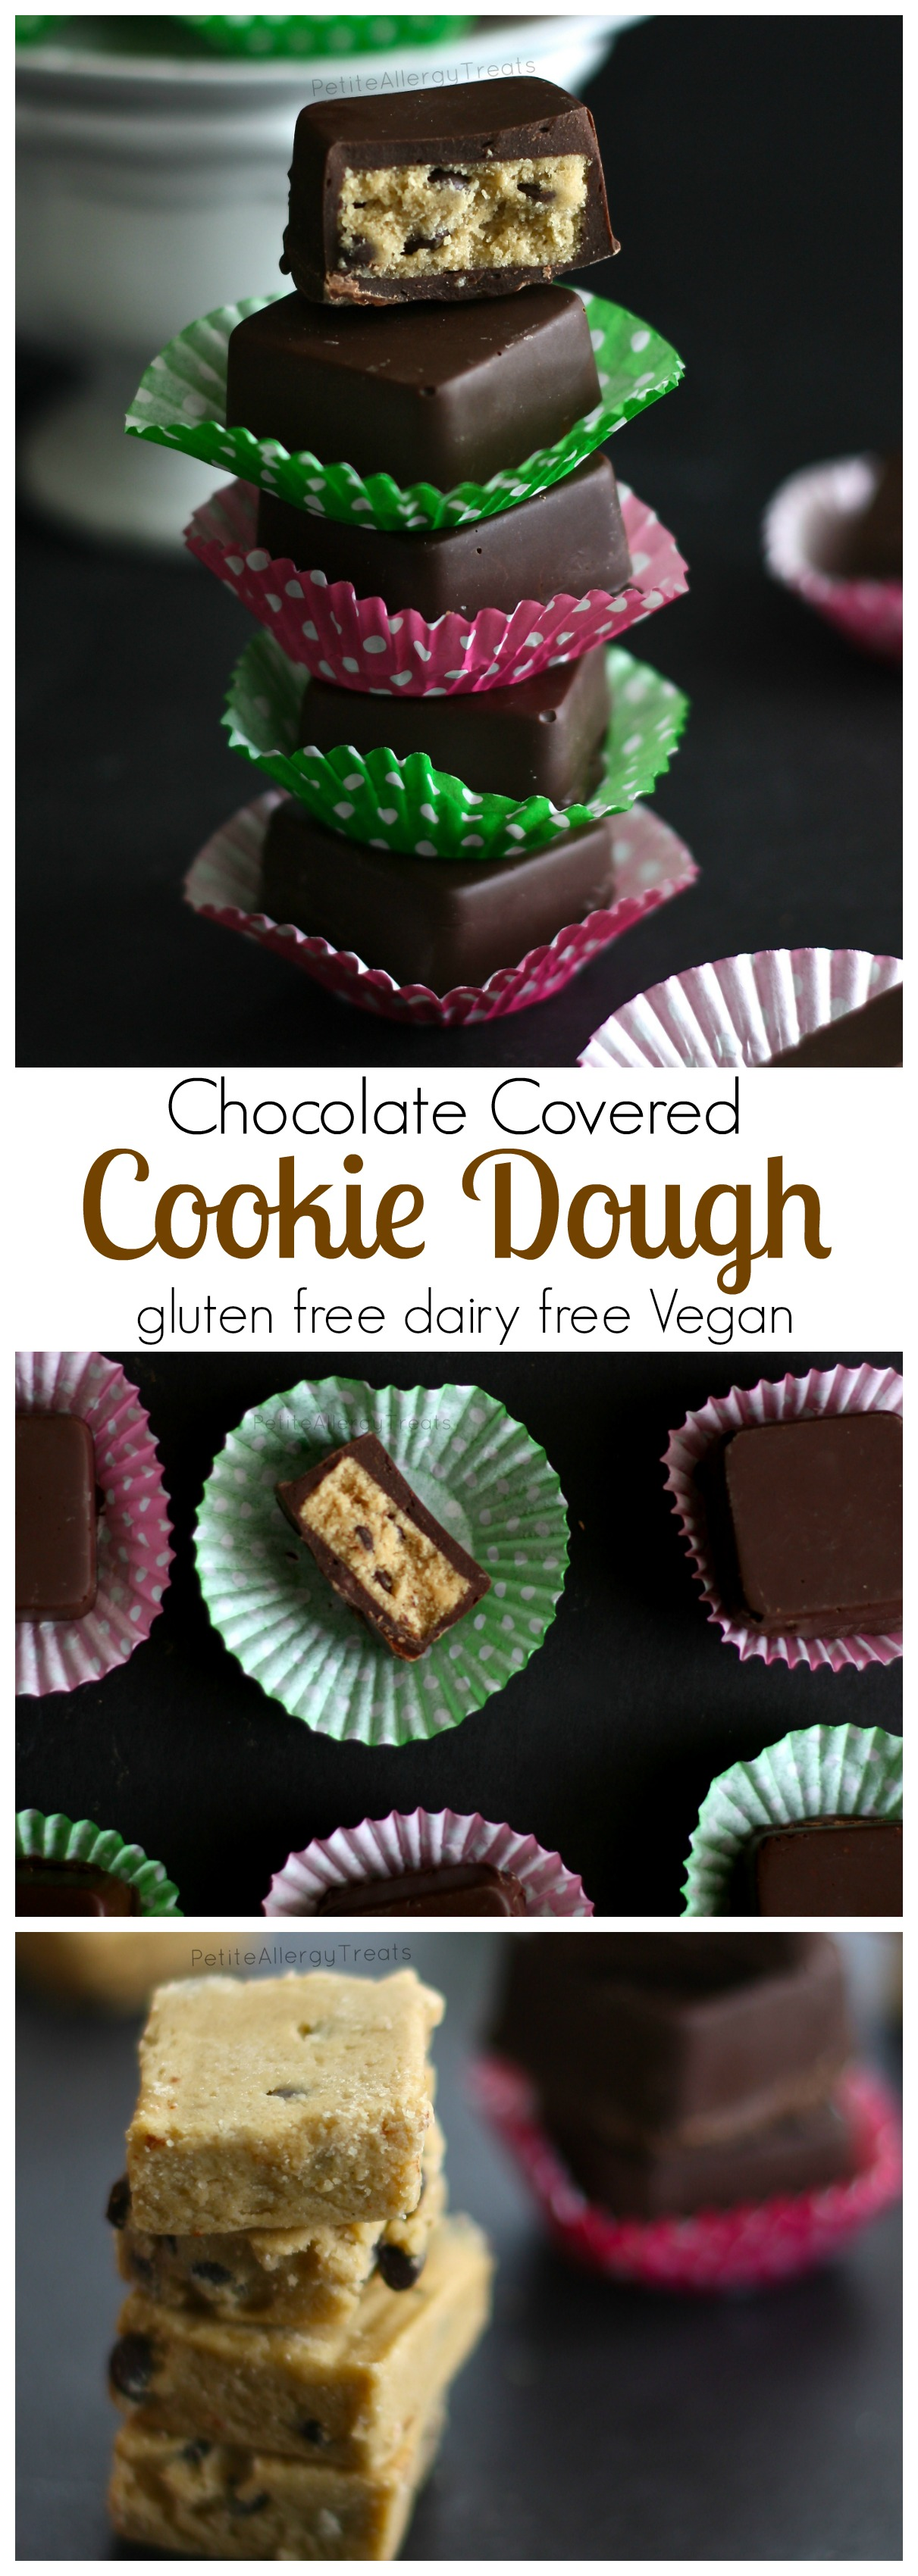 Raw Cookie Dough Bites (Egg less) Delicious chocolate covered cookie dough bites made gluten free, dairy free and Vegan